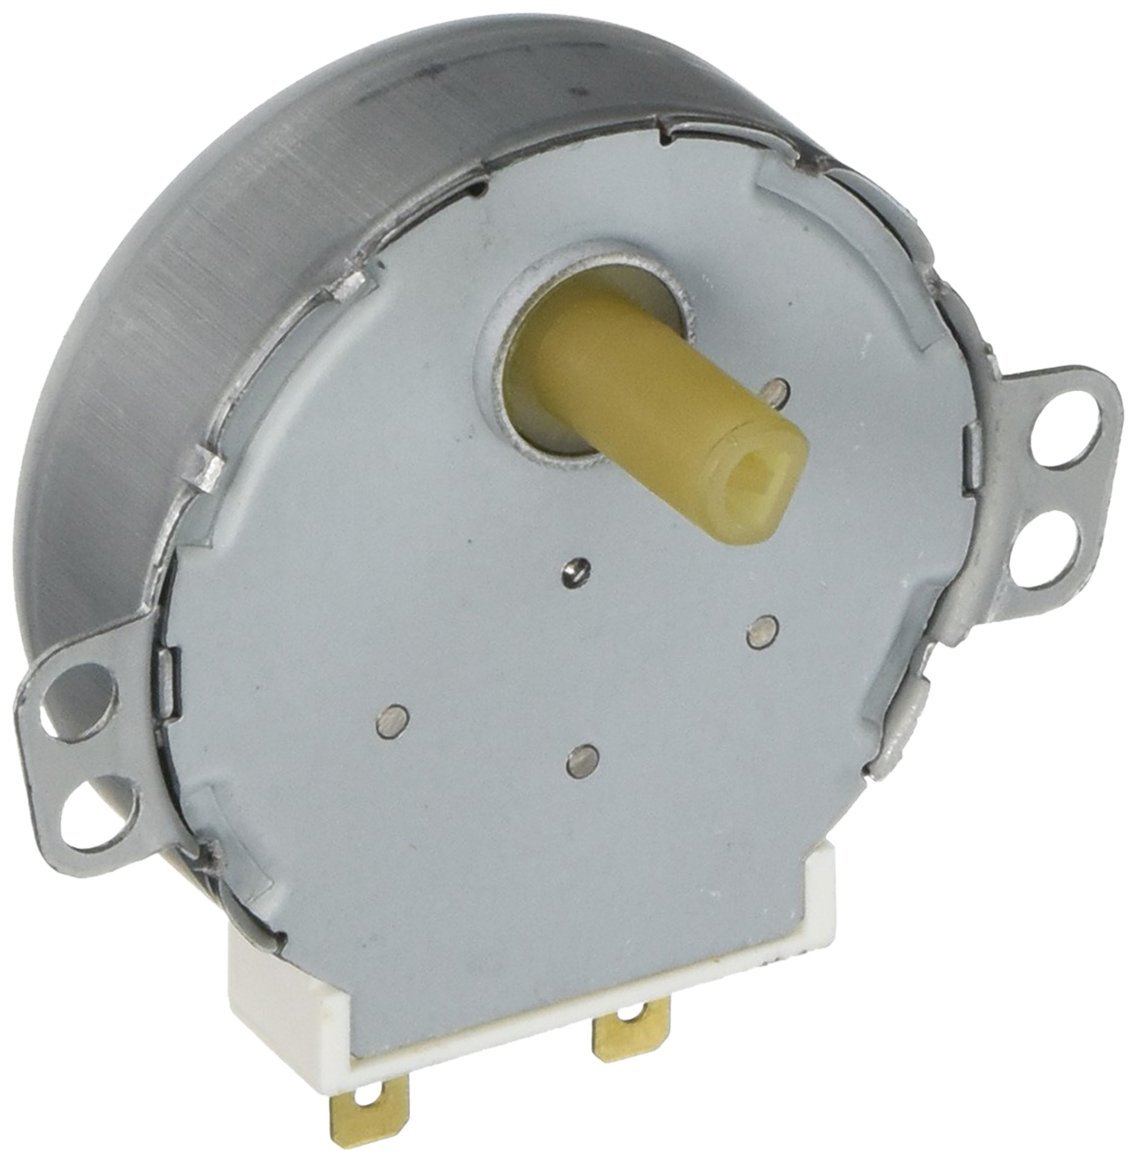 General Electric WB26X186 Microwave Turntable Motor